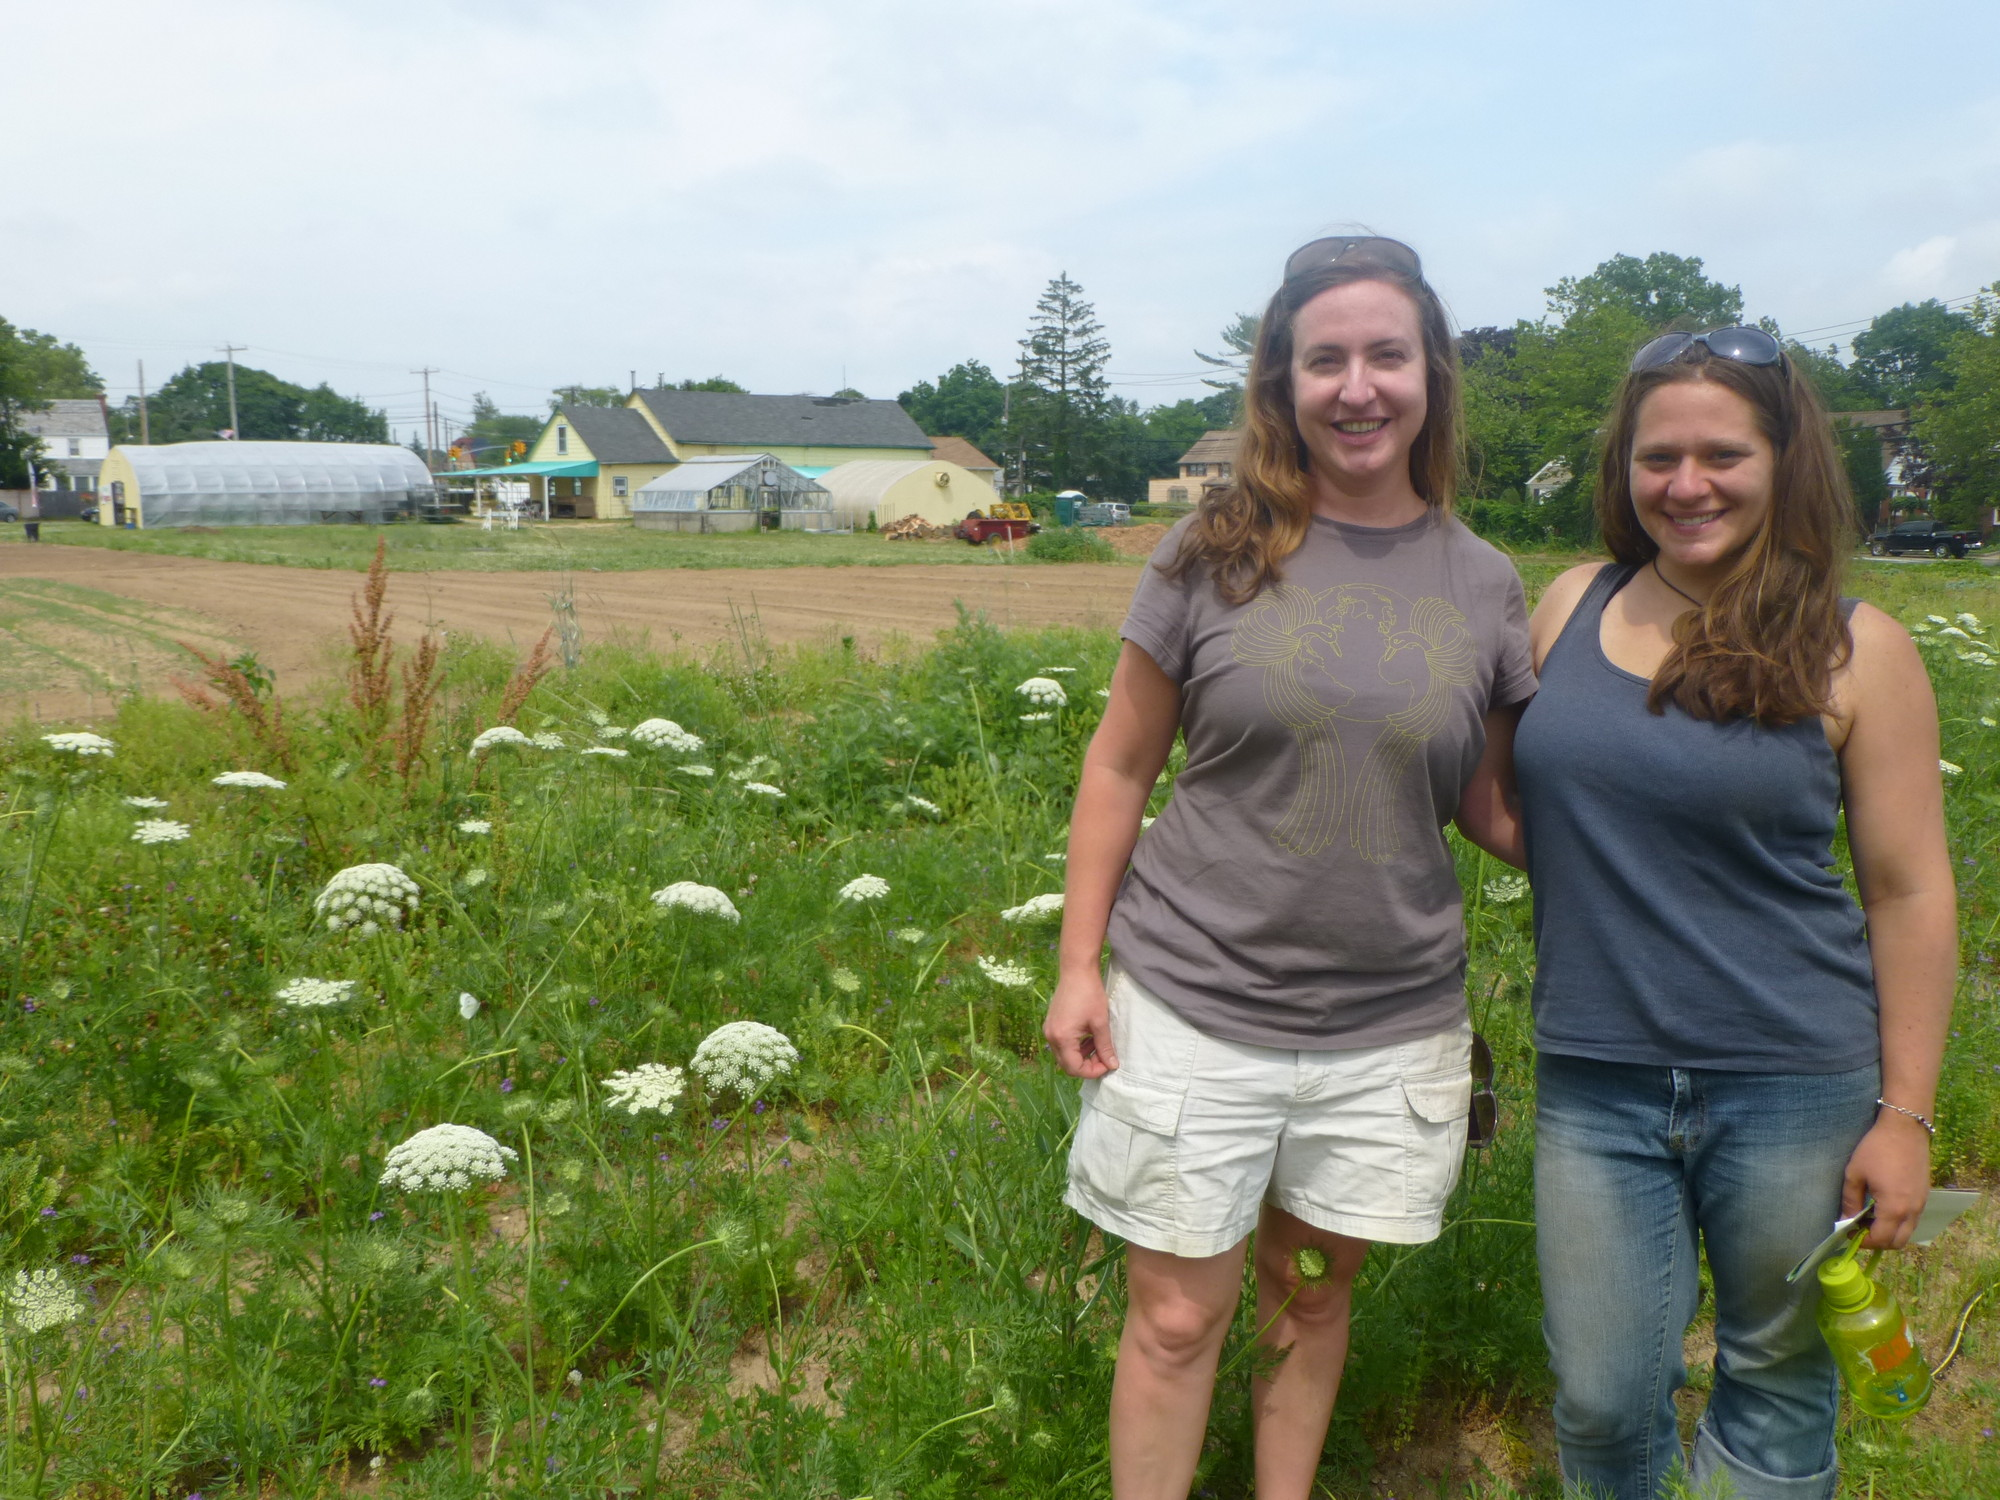 Corcoran, left, and Schaefer said they hope to turn this labor of love into a full-fledged organic farm in the coming years.